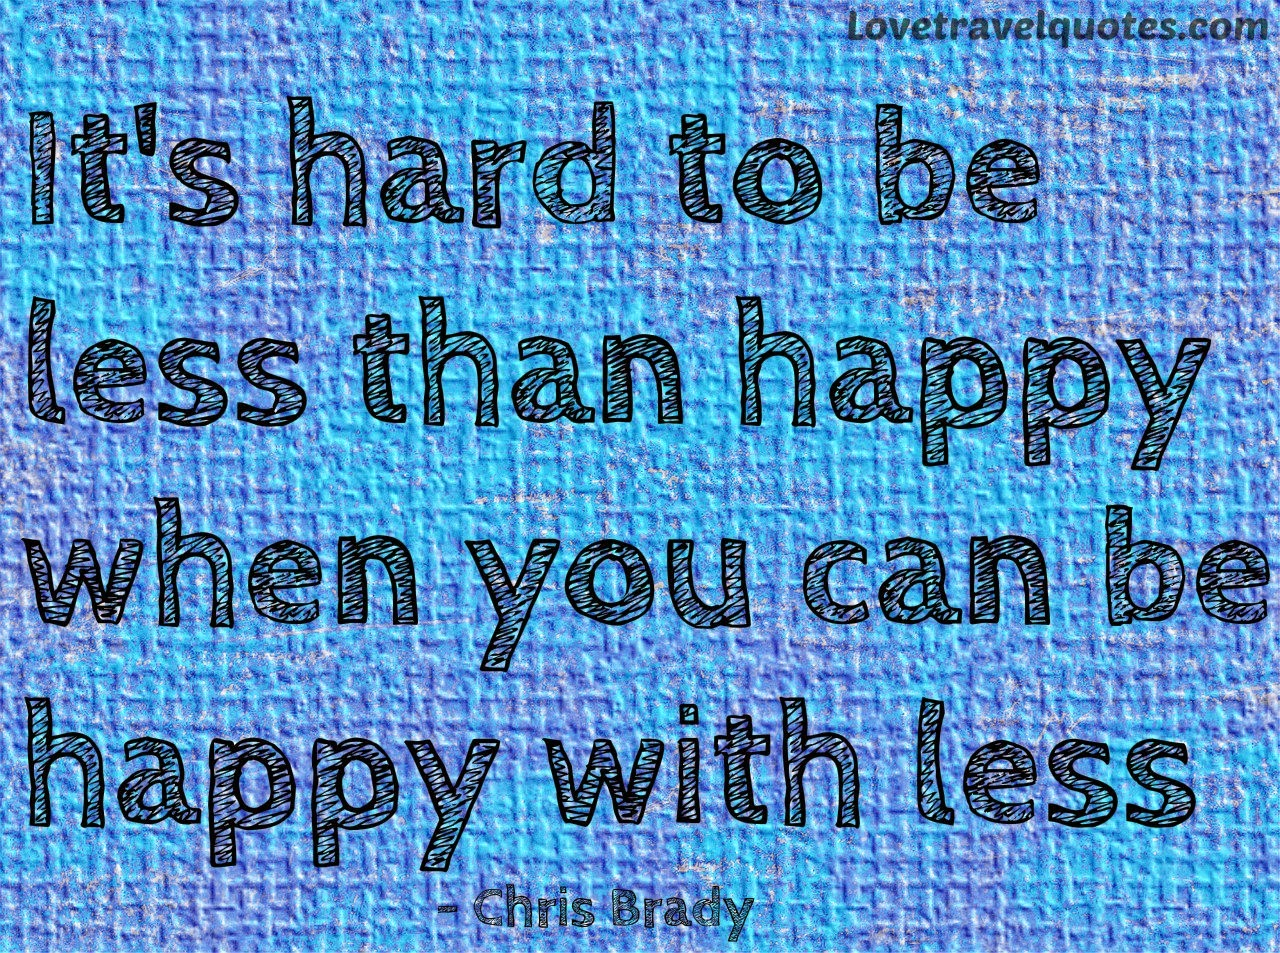 it's hard to be less than happy when you can be happy with less